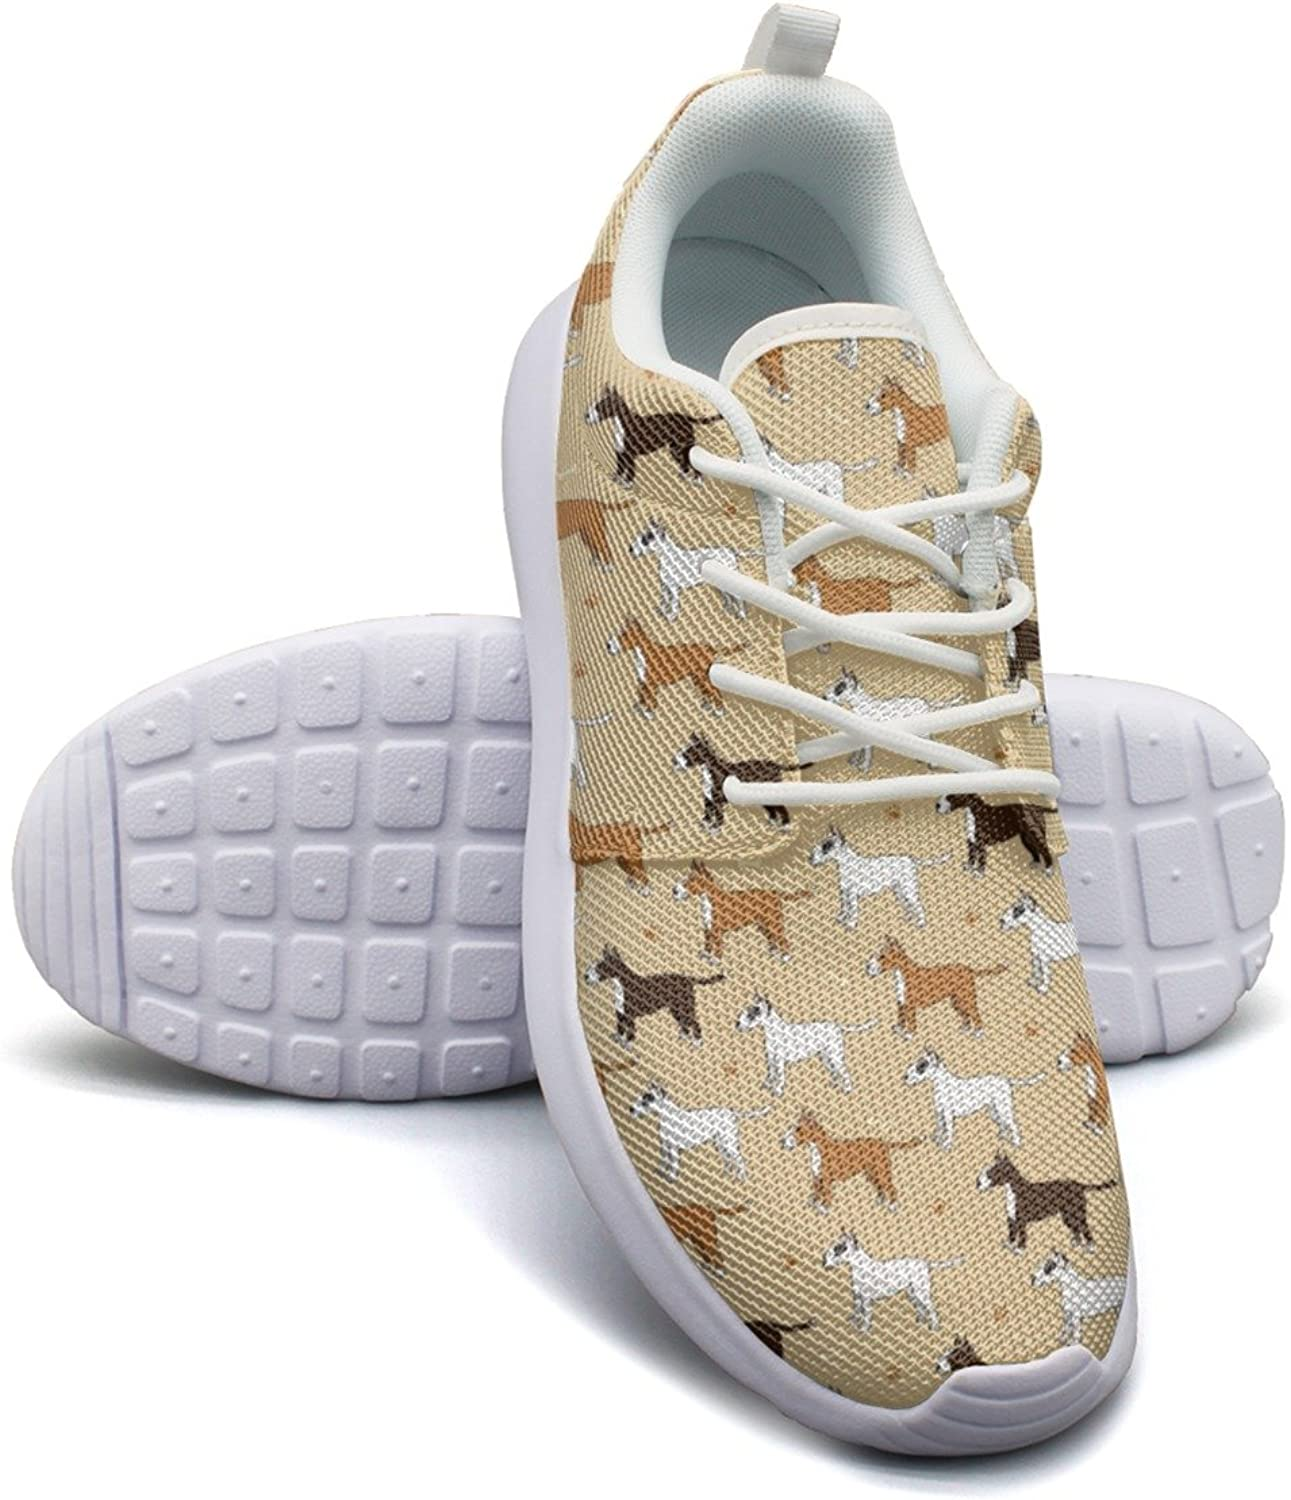 Playing Dog Funny Purebred Puppy Running shoes Women Wide size 7.5